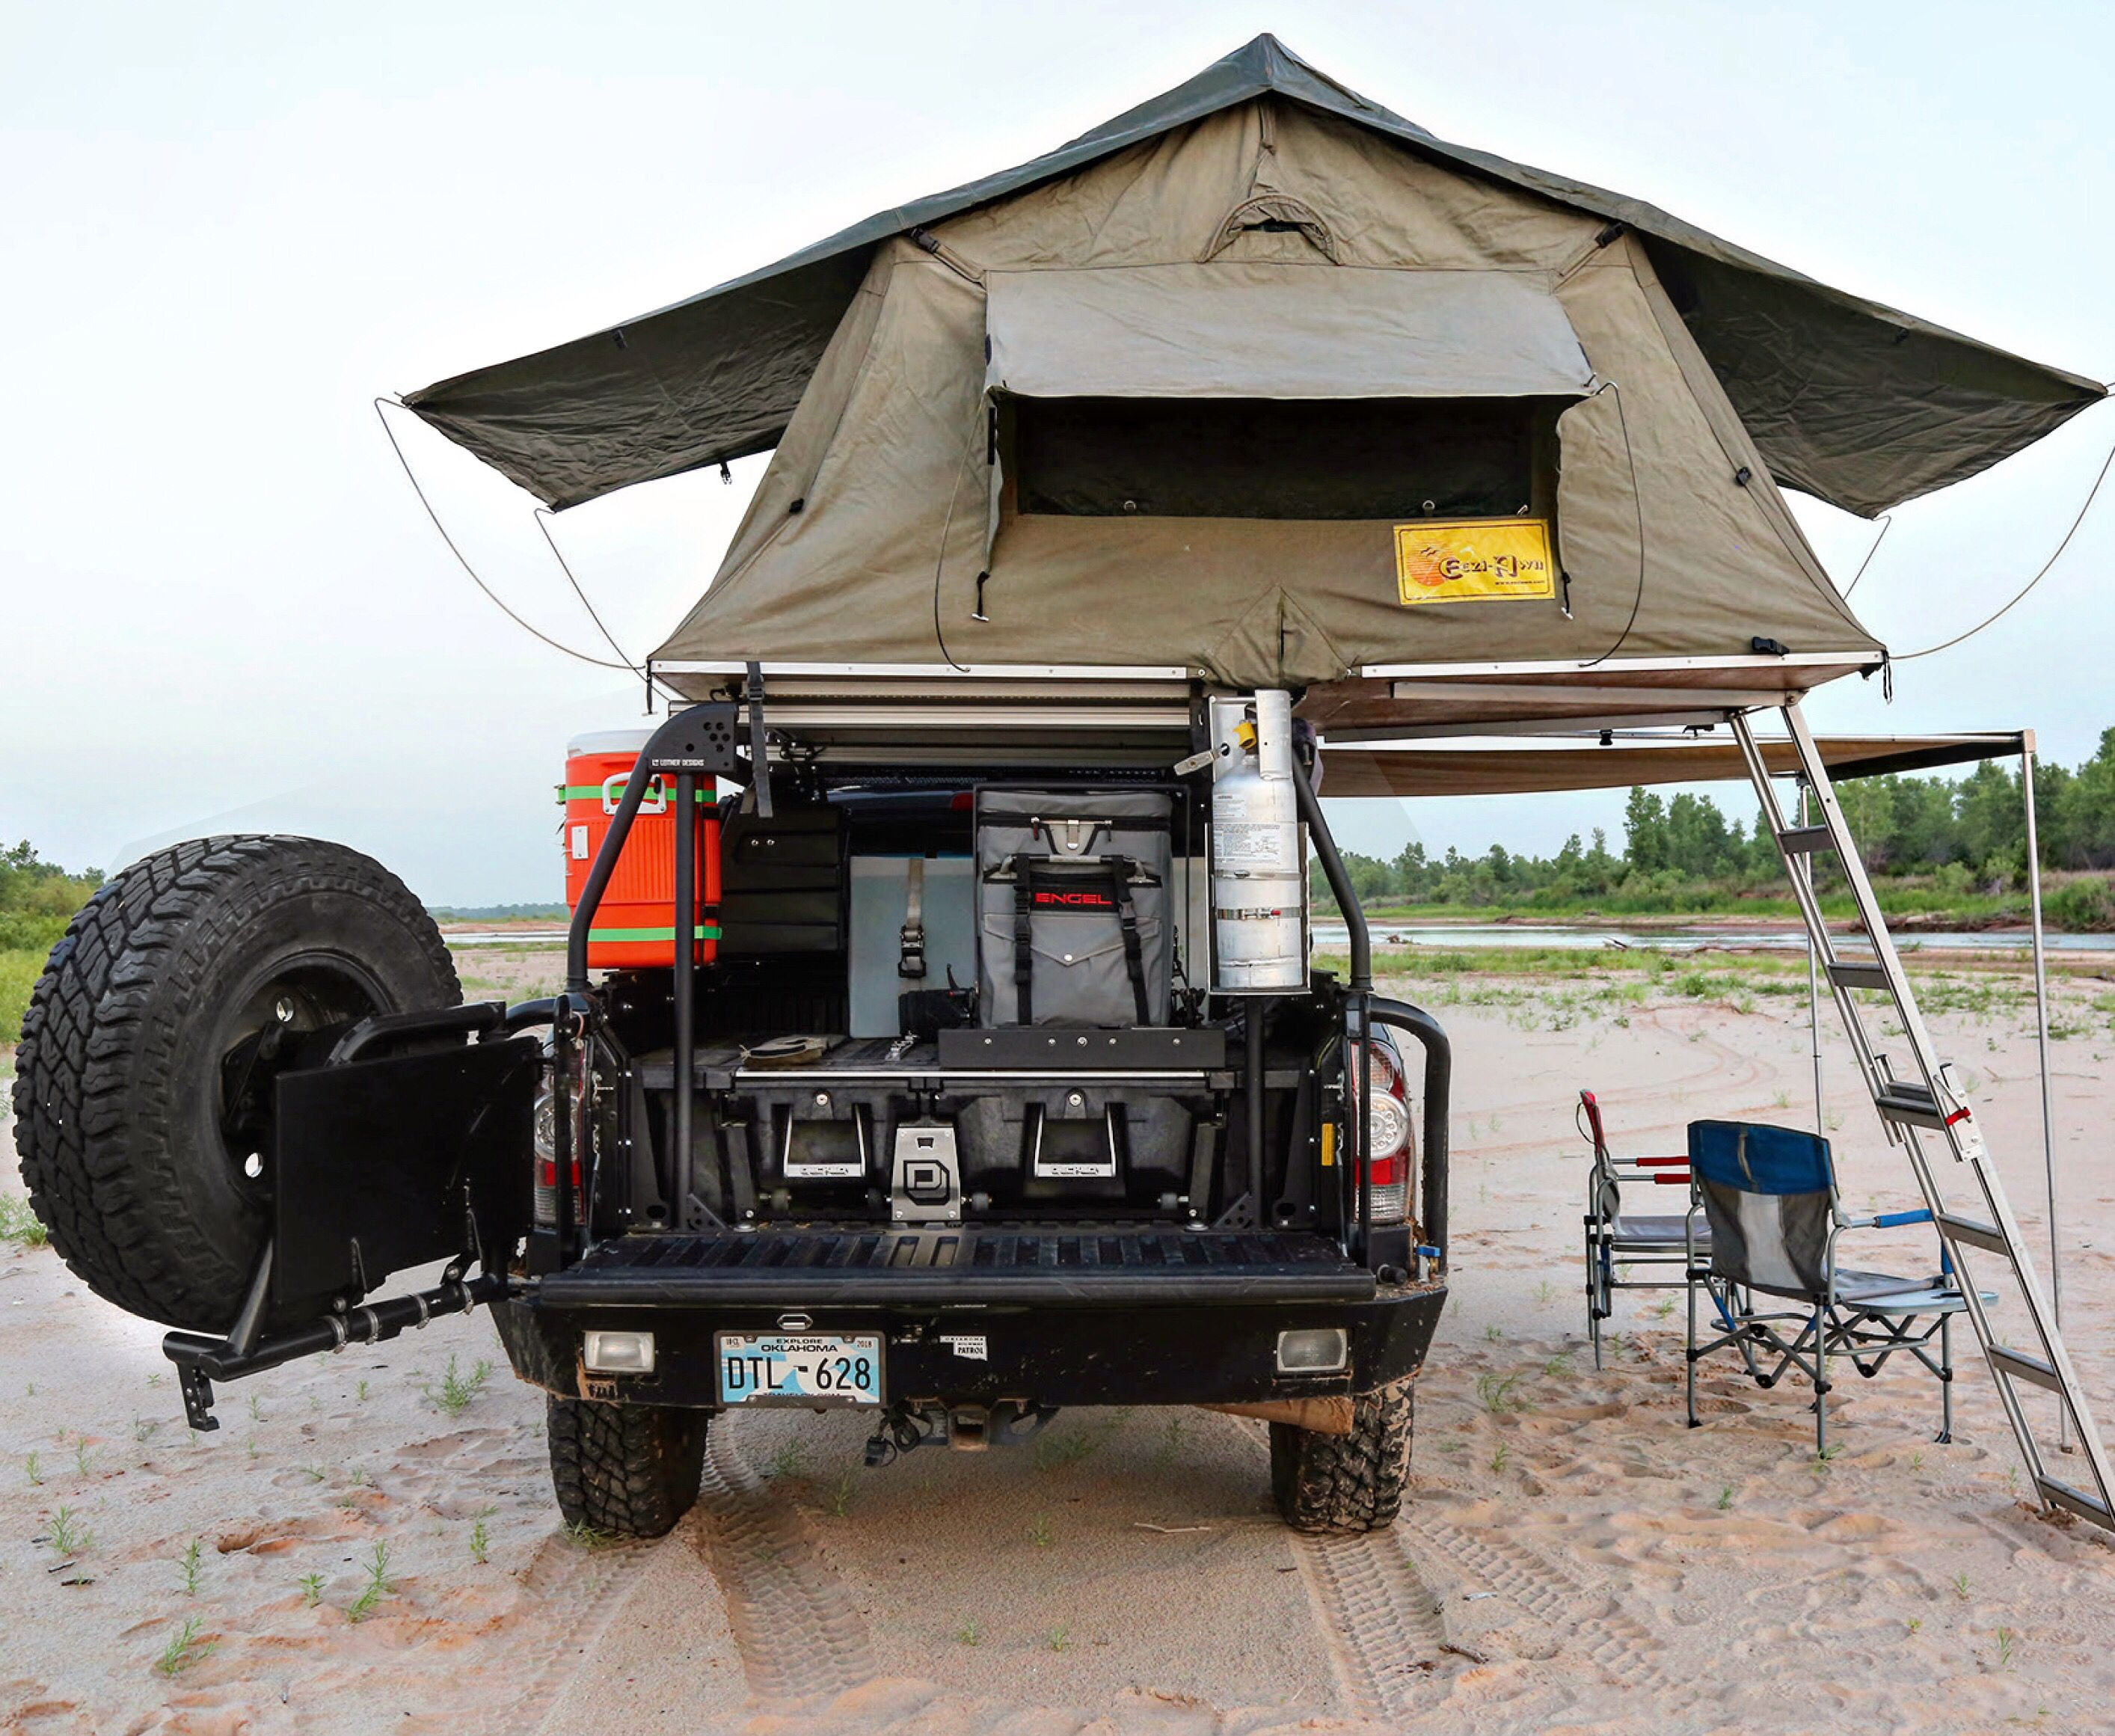 Decked Cargo Storage For Tacoma Featured In Outdoorx4 Mag Truck Bed Storage Decked Truck Bed Overlanding